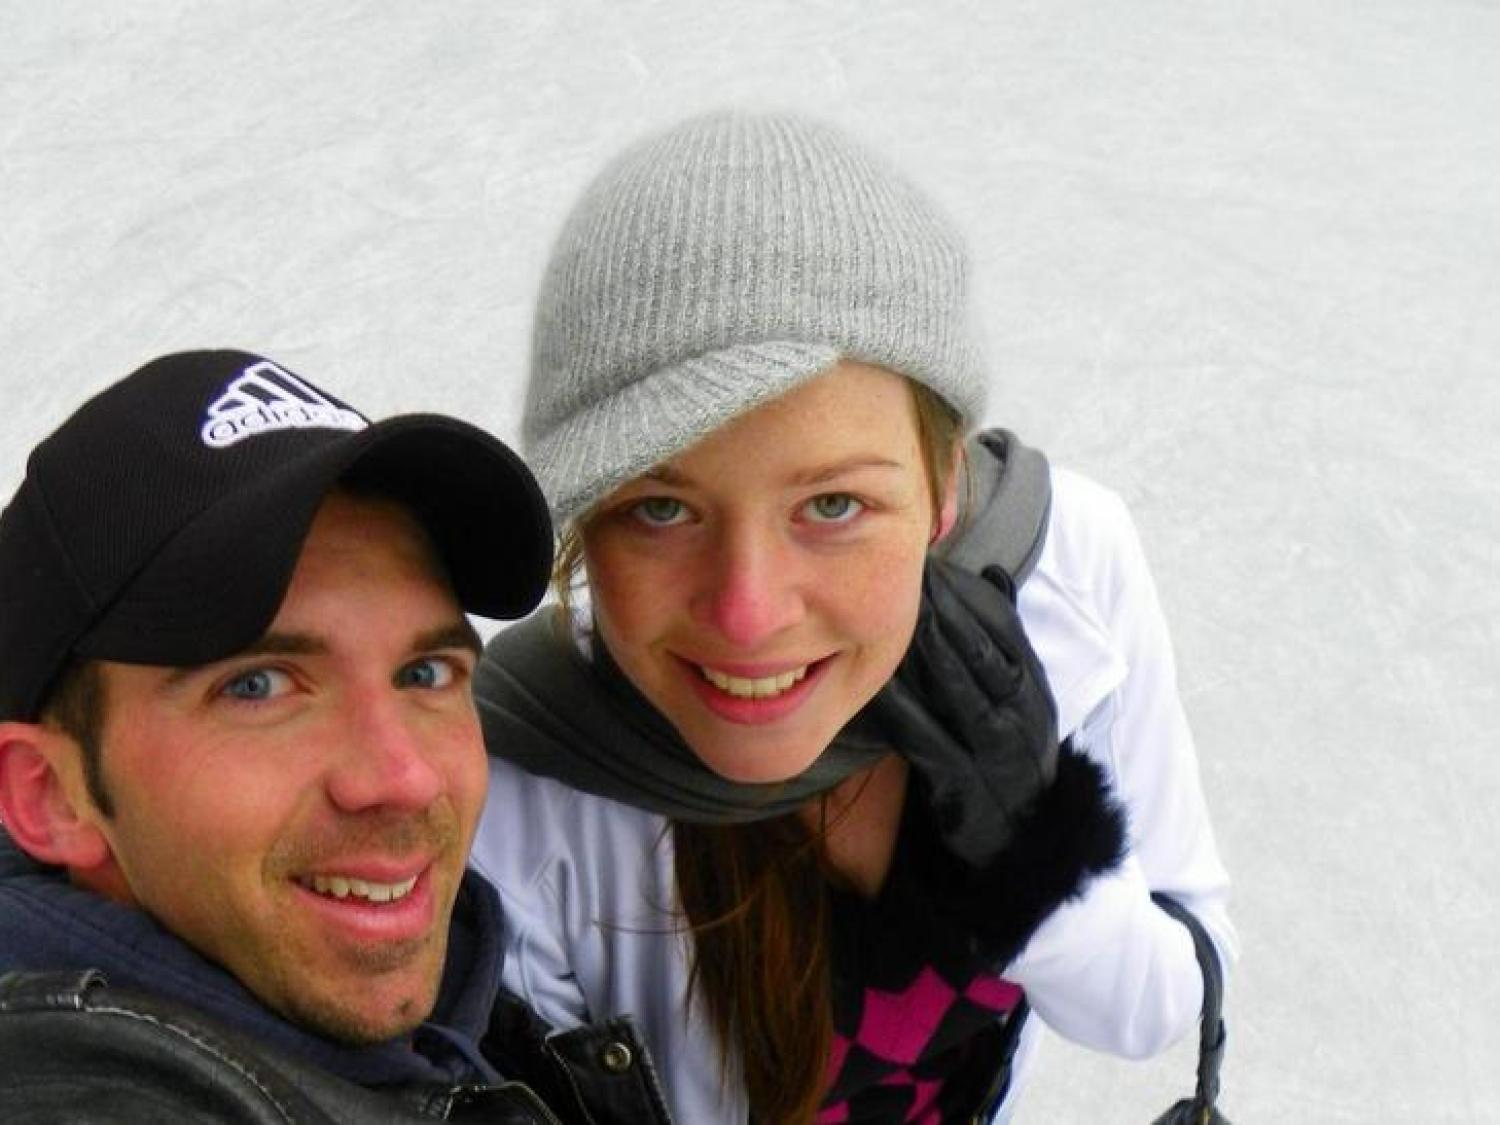 Discover the World; Discover Yourself. Mapping personal evolution through adventure travel. We are Megan and Mike and have been traveling & blogging since 2007 inspiring travel and change!